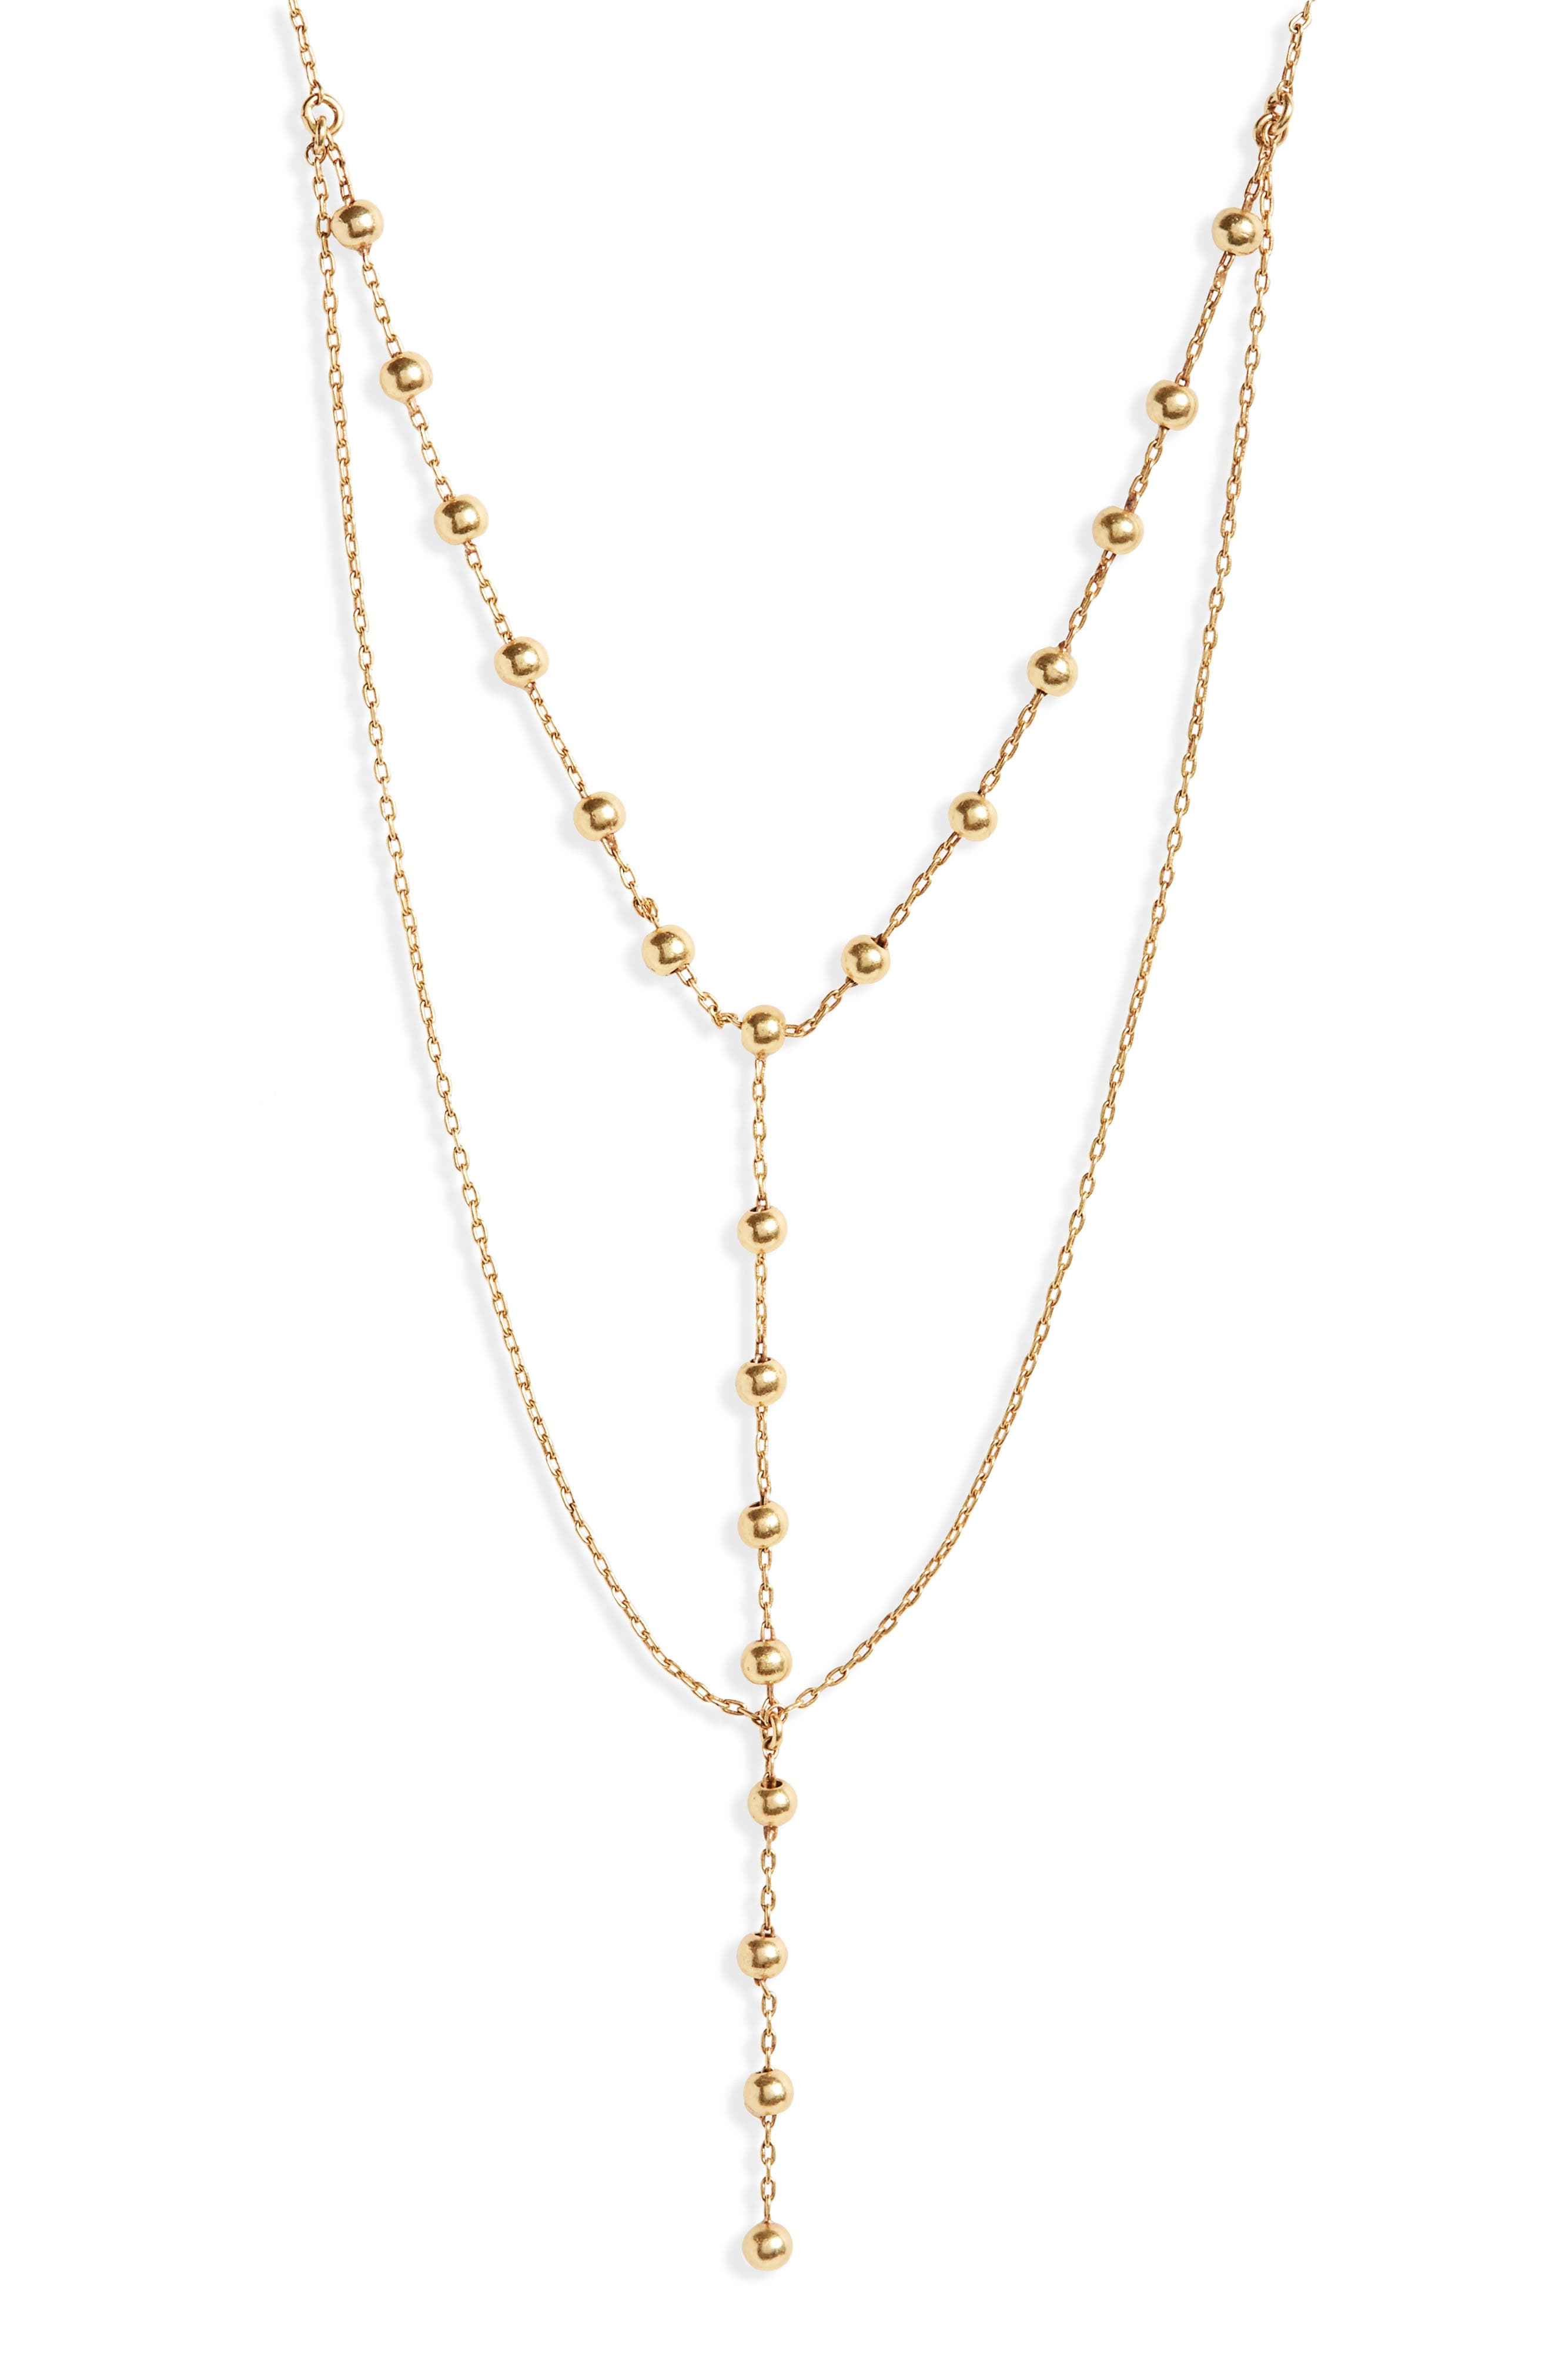 Sphere Layered Lariat Necklace,                             Main thumbnail 1, color,                             710